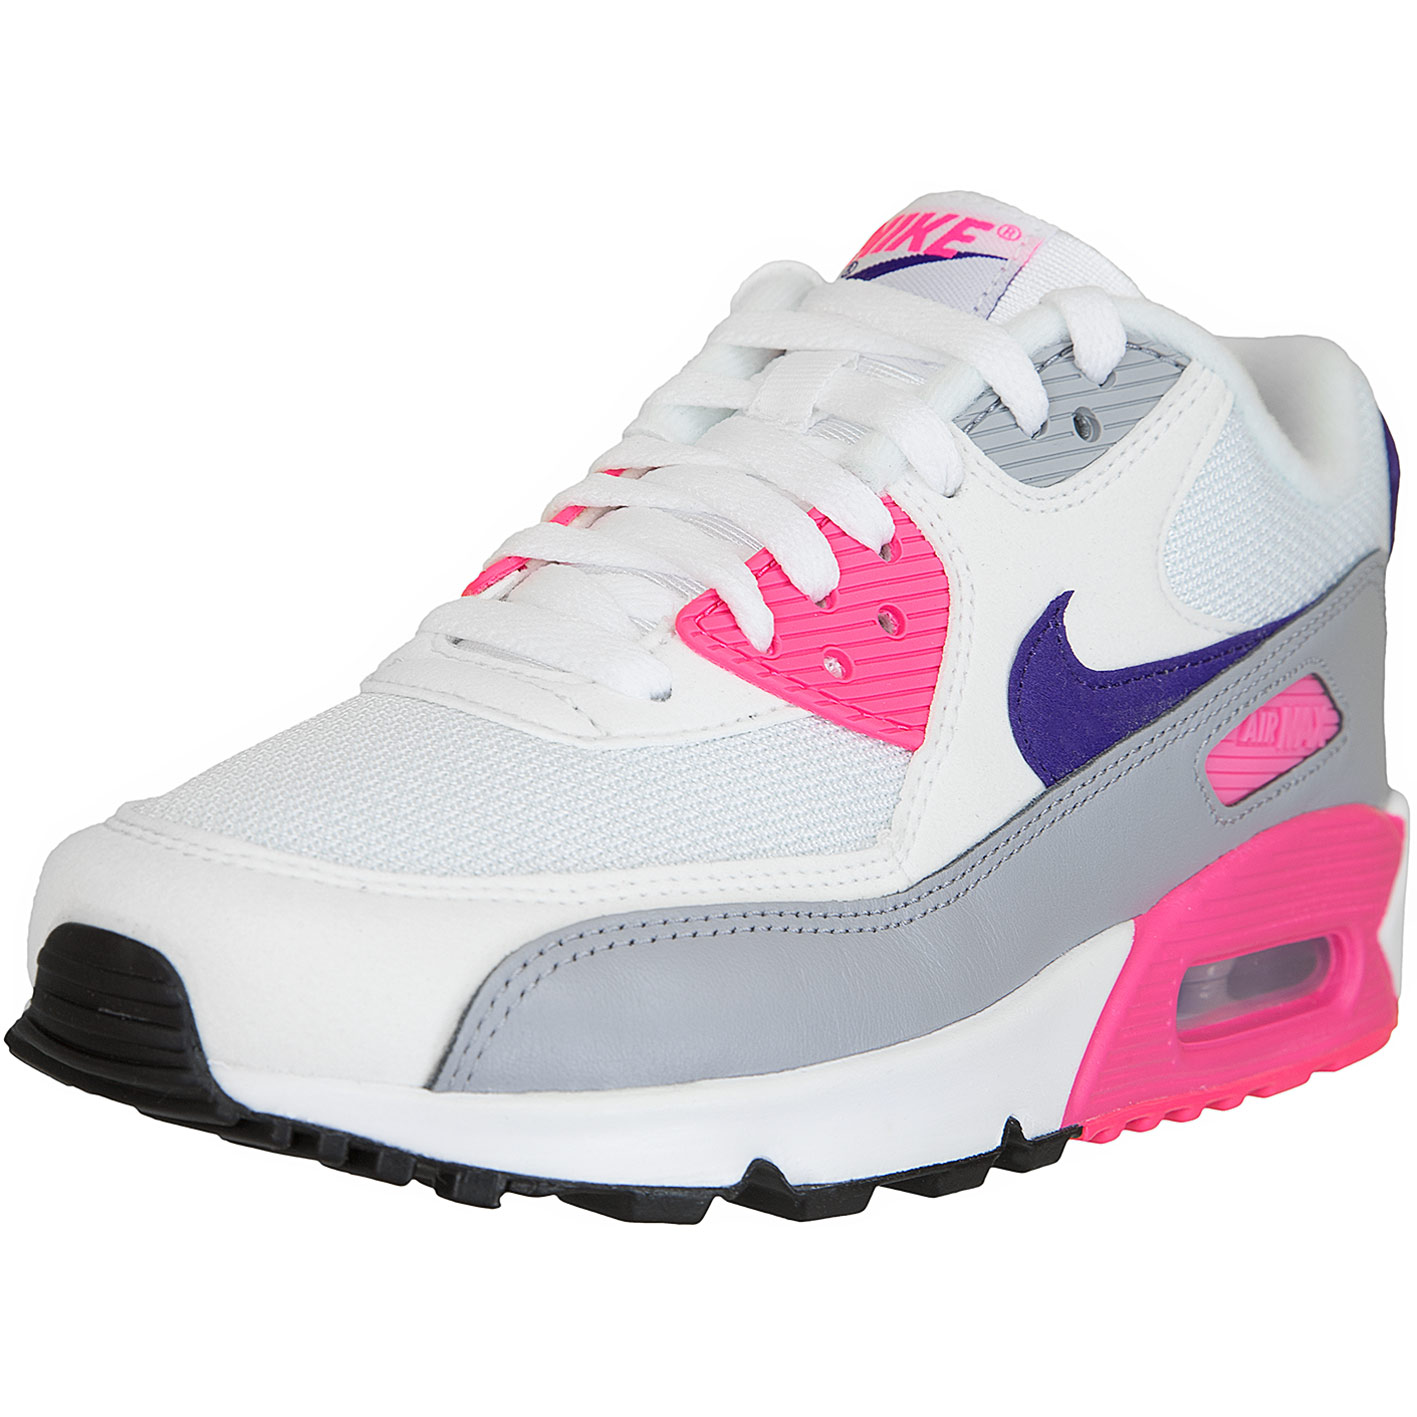 classic fit wholesale well known ☆ Nike Damen Sneaker Air Max 90 weiß/pink - hier bestellen!